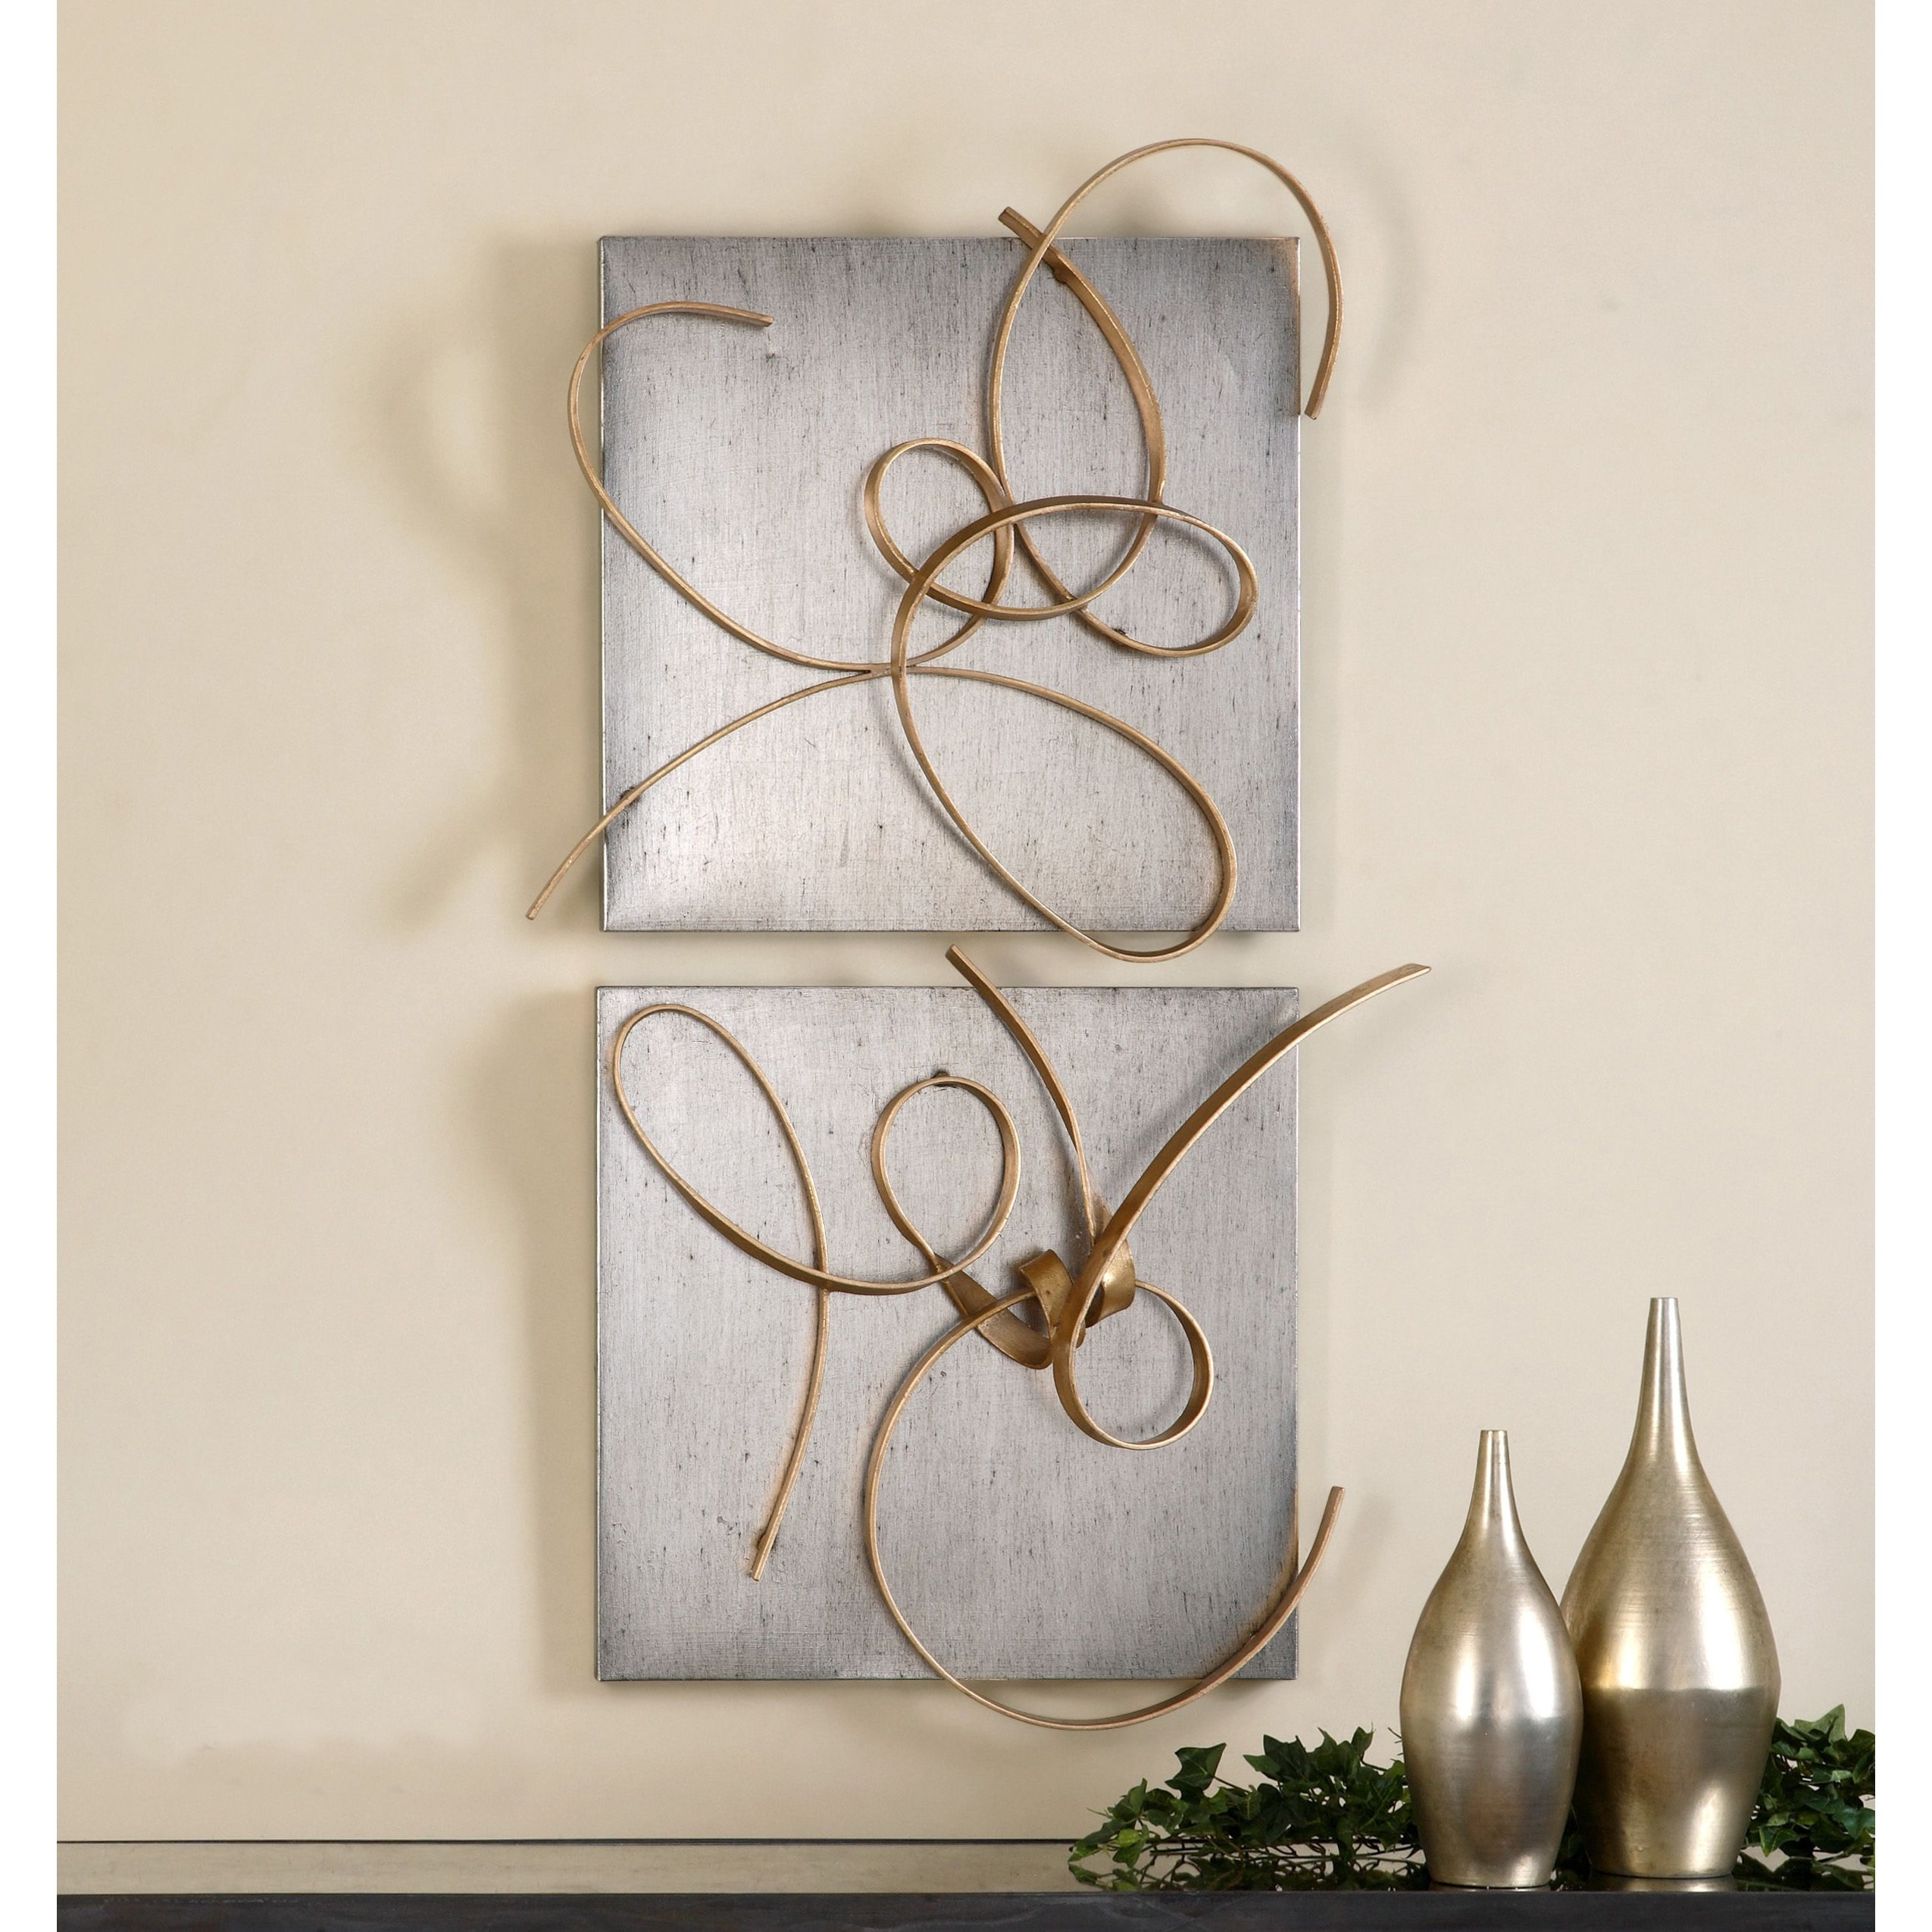 Uttermost Harmony Metal Wall Art (Set Of 2) – Free Shipping Today Intended For 2017 Uttermost Metal Wall Art (View 10 of 15)